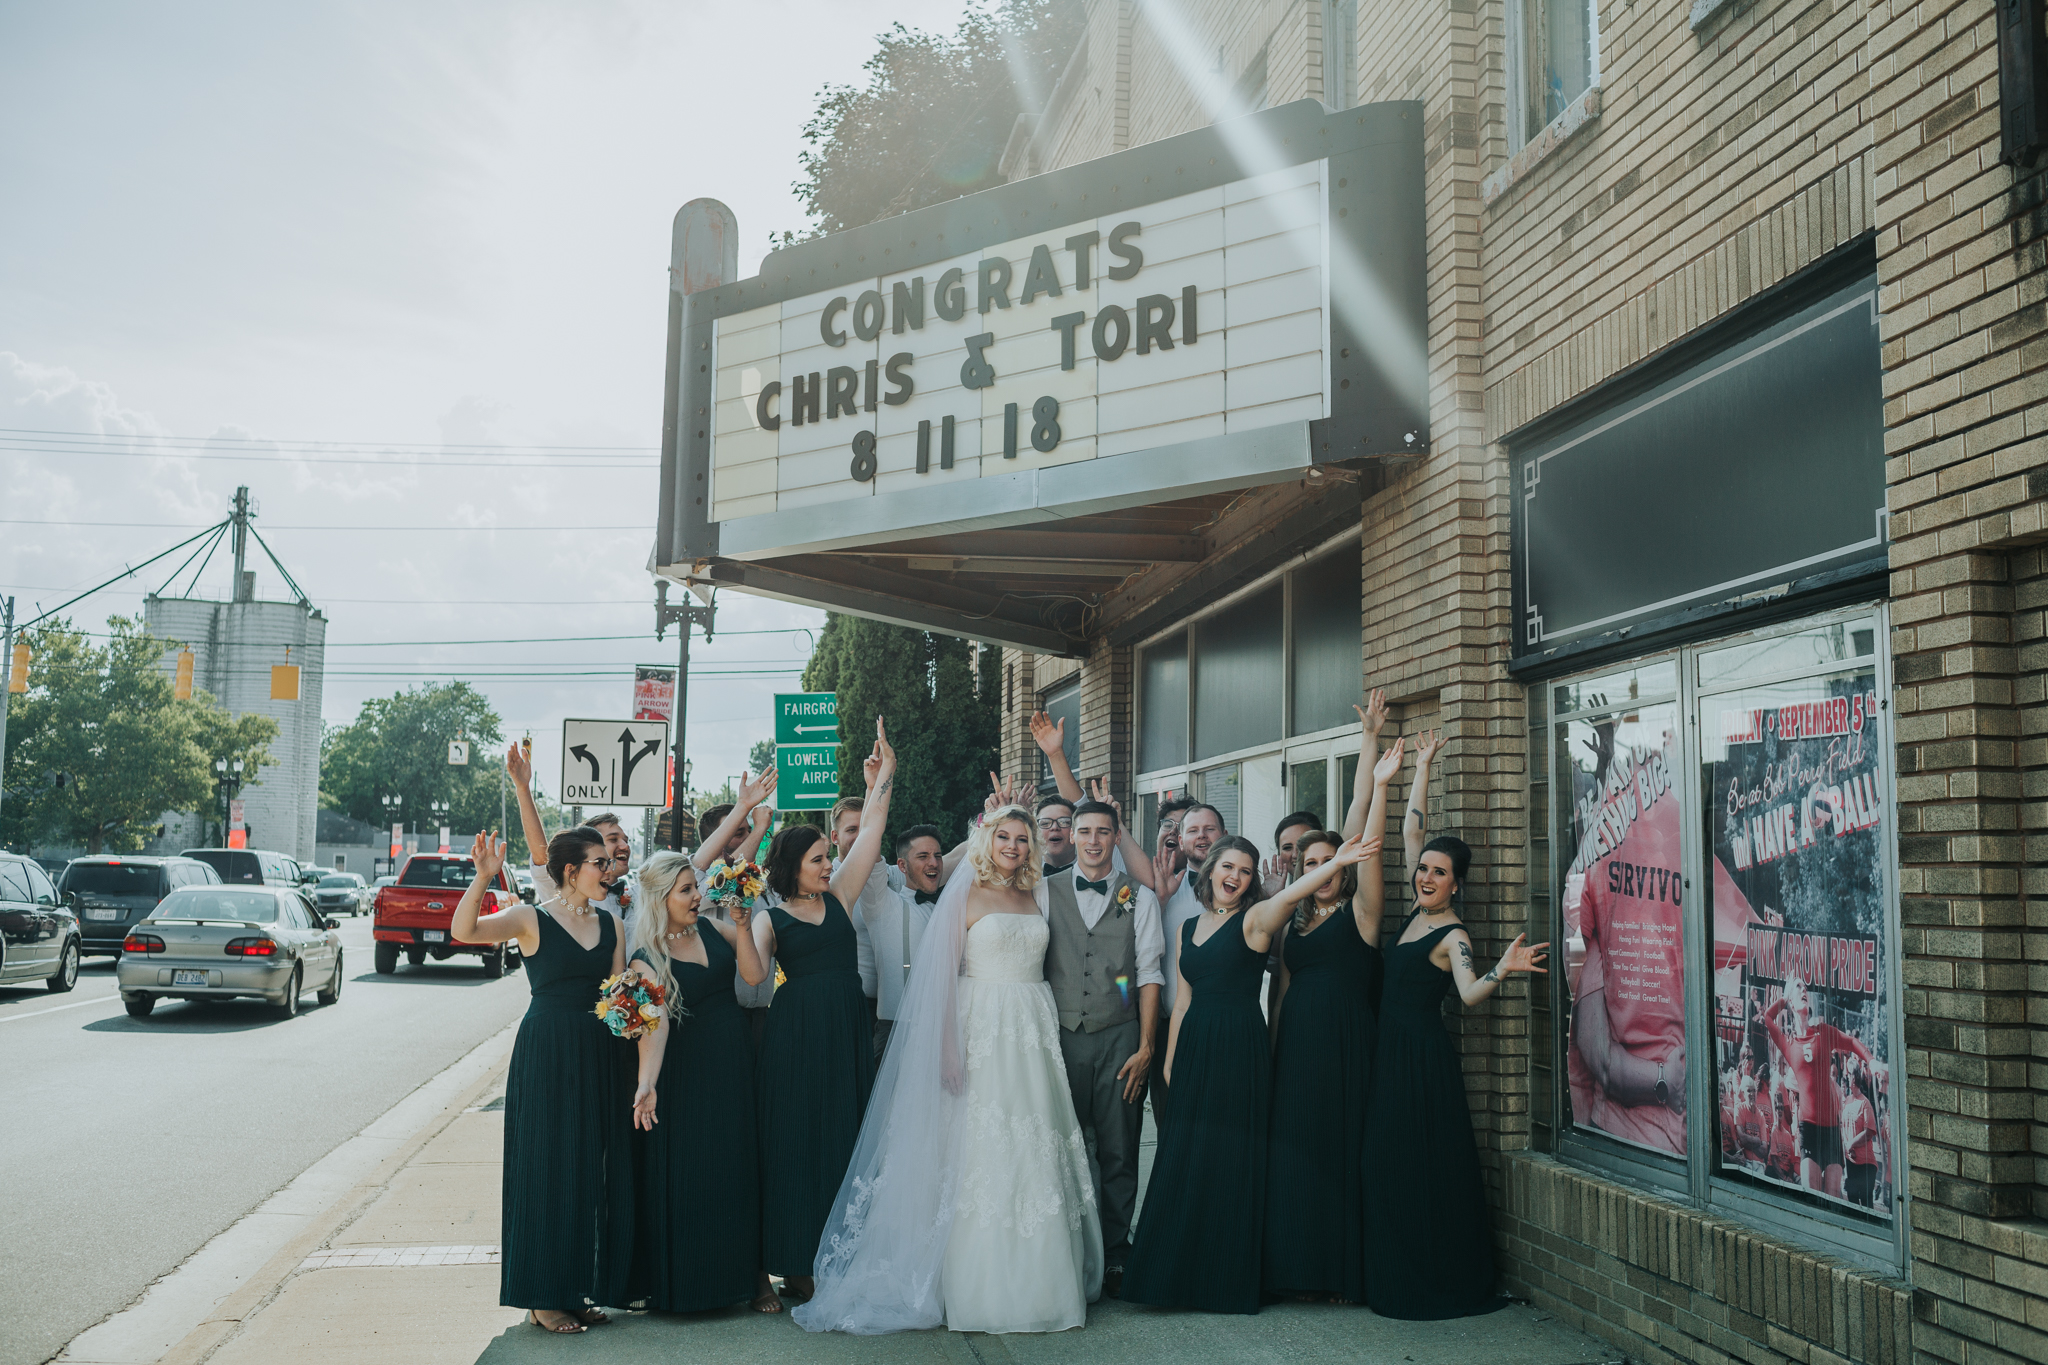 wedding party cheering in front of sign